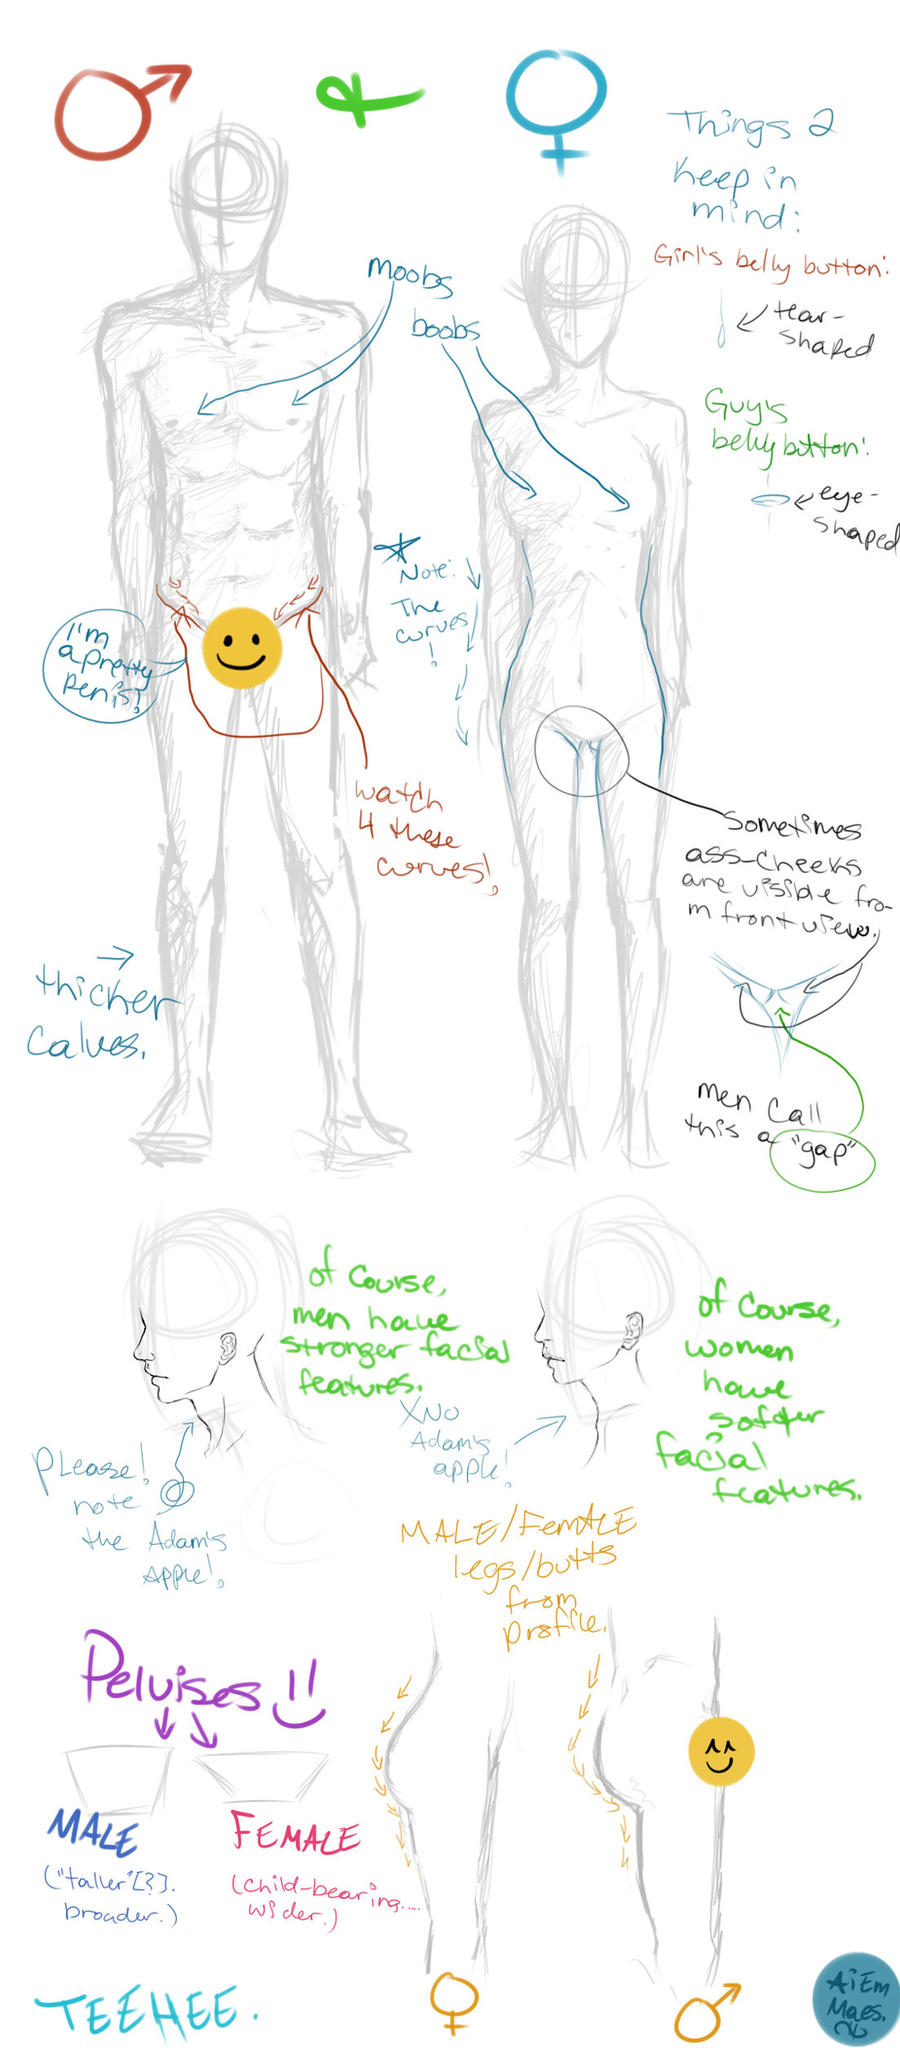 Male vs Female anatomy by wiccimm on DeviantArt